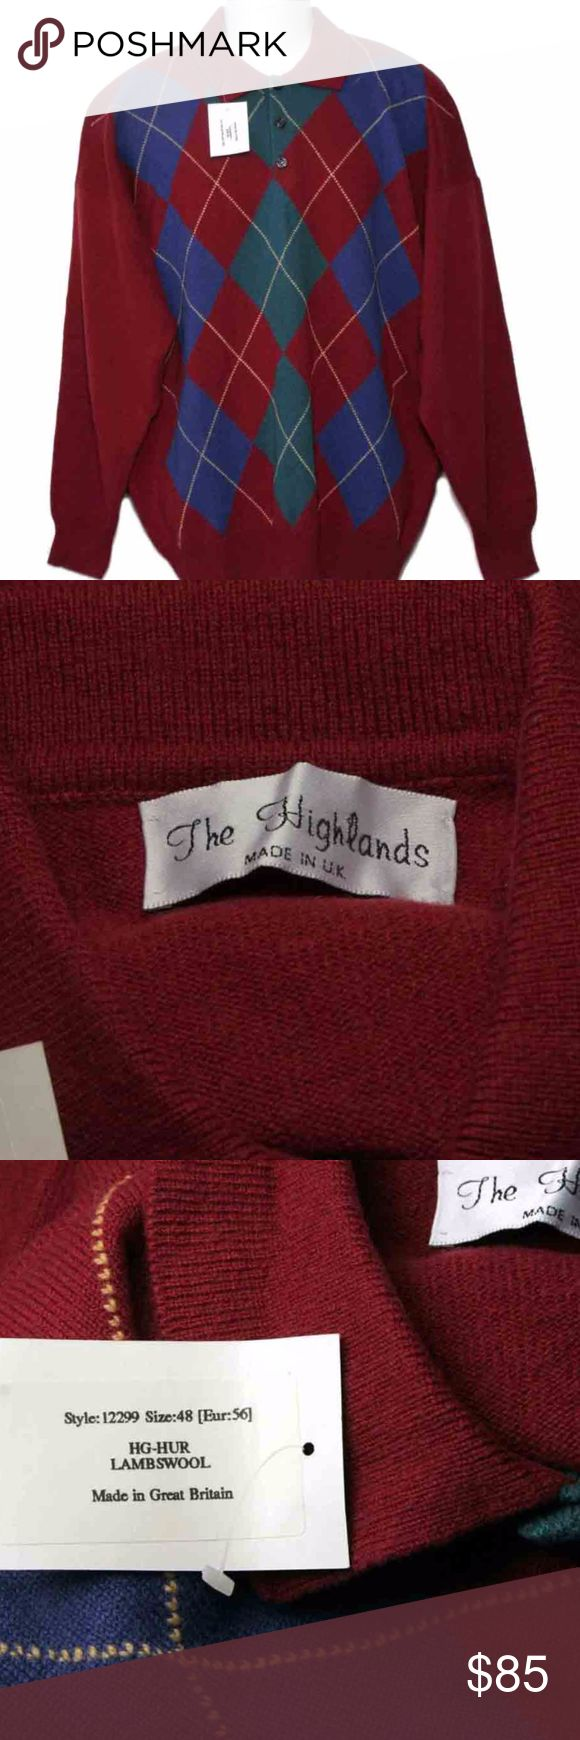 Mens The Highlands Scottish Wool Sweater Size XXL Brand new (with tags) The Highlands Scottish lambswool sweater The size is USA 2XL with 38 inch sleeves, or Euro 56 The fabric is 100% Scottish lambswool and the style collared button top pullover. The bottom of the sweater is ribbed. The base color is red, and the sweater has solid blue, red, and green diamonds. Gold lines form a diamond pattern over the solid colored diamonds. This sweater was made in the United Kingdom. 3 button top. The…